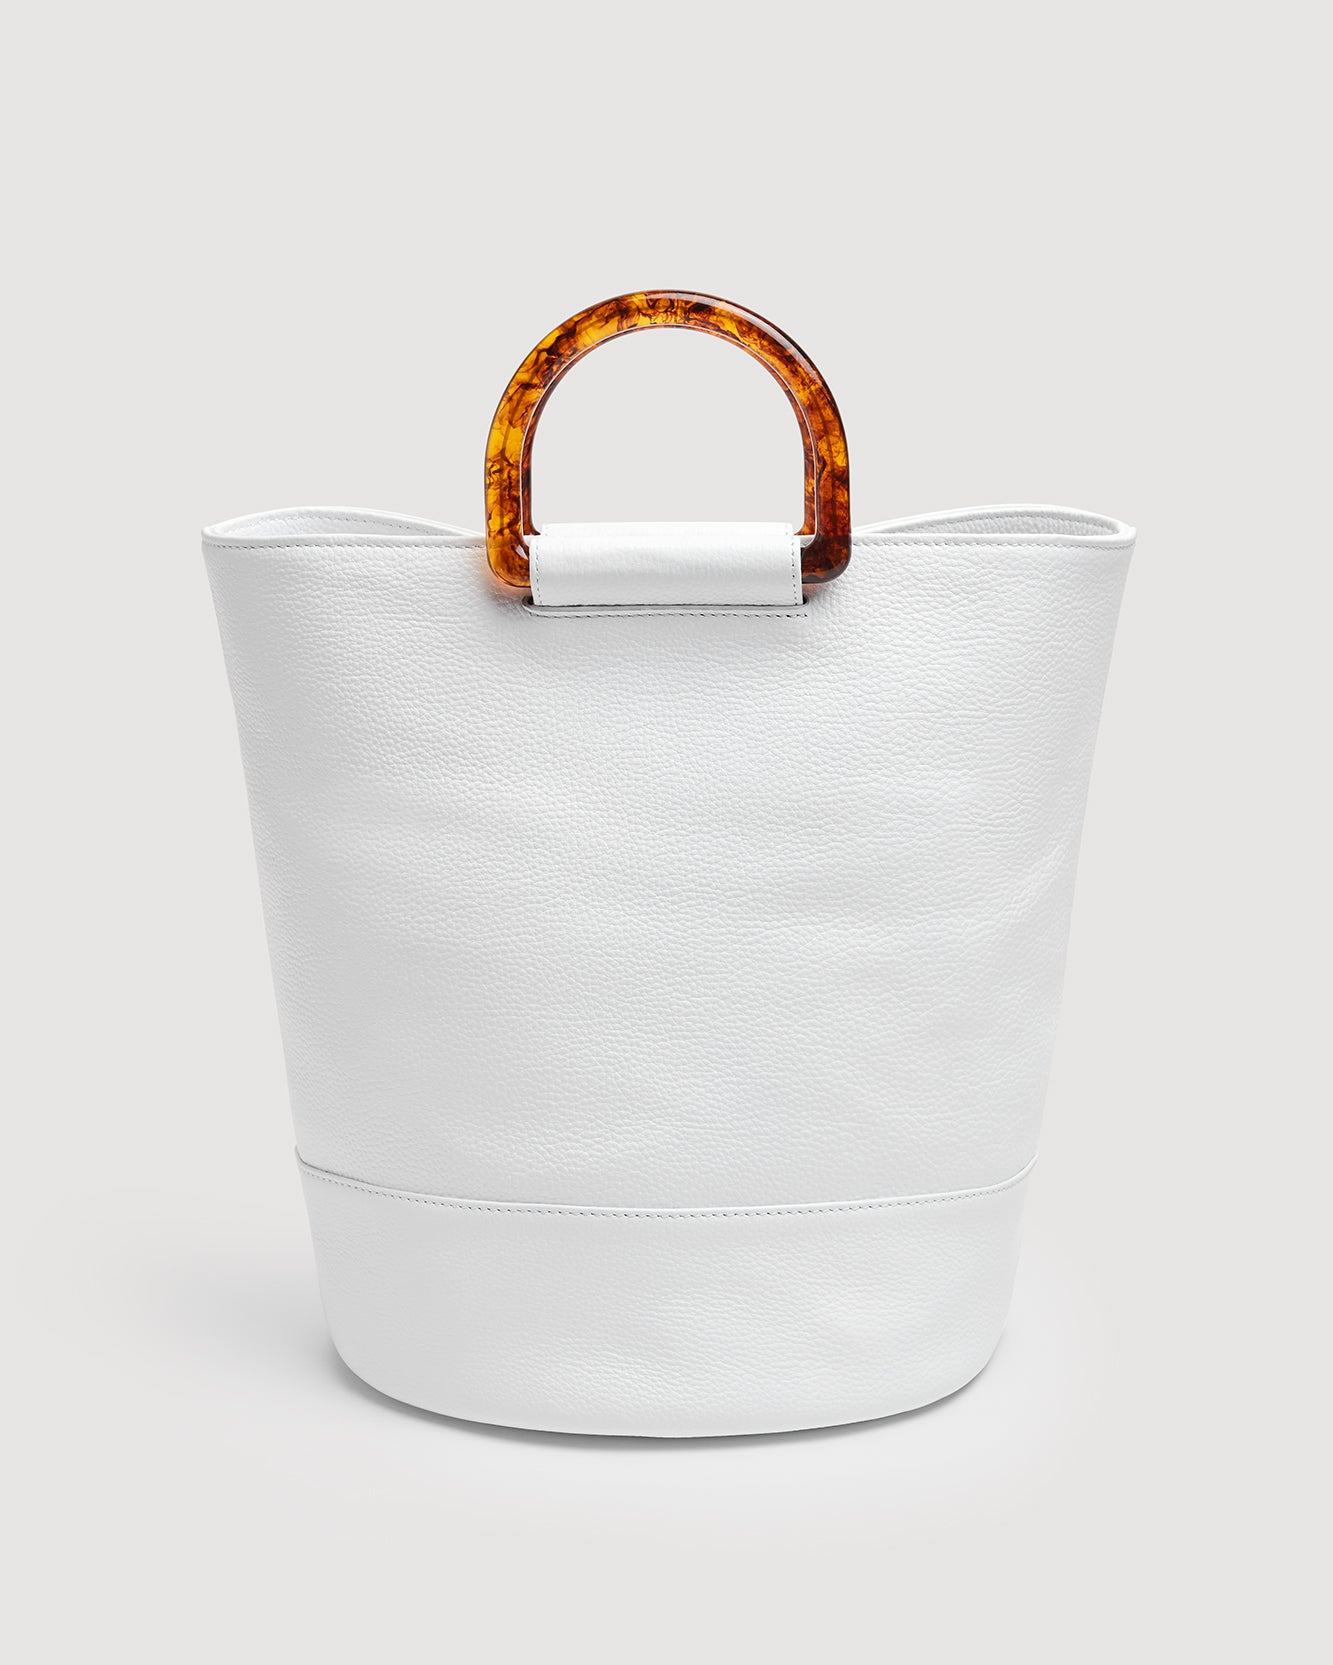 Image of Ring Tote in White